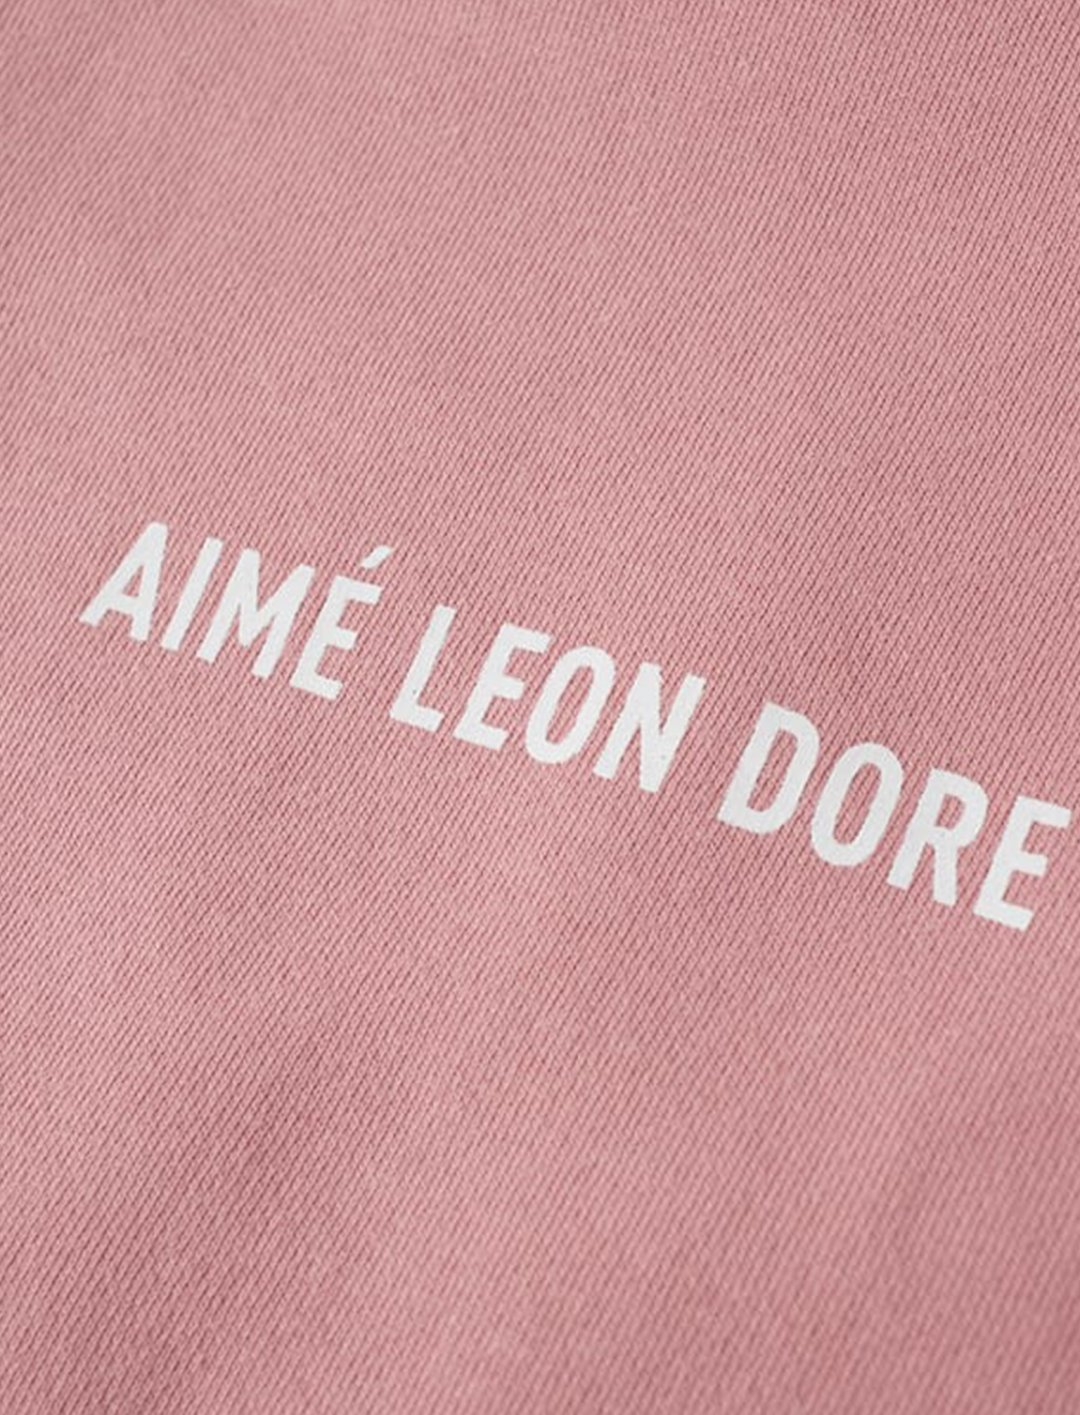 "GASHI's Crew Sweatshirt {""id"":5,""product_section_id"":1,""name"":""Clothing"",""order"":5} Aime Leon Dore"